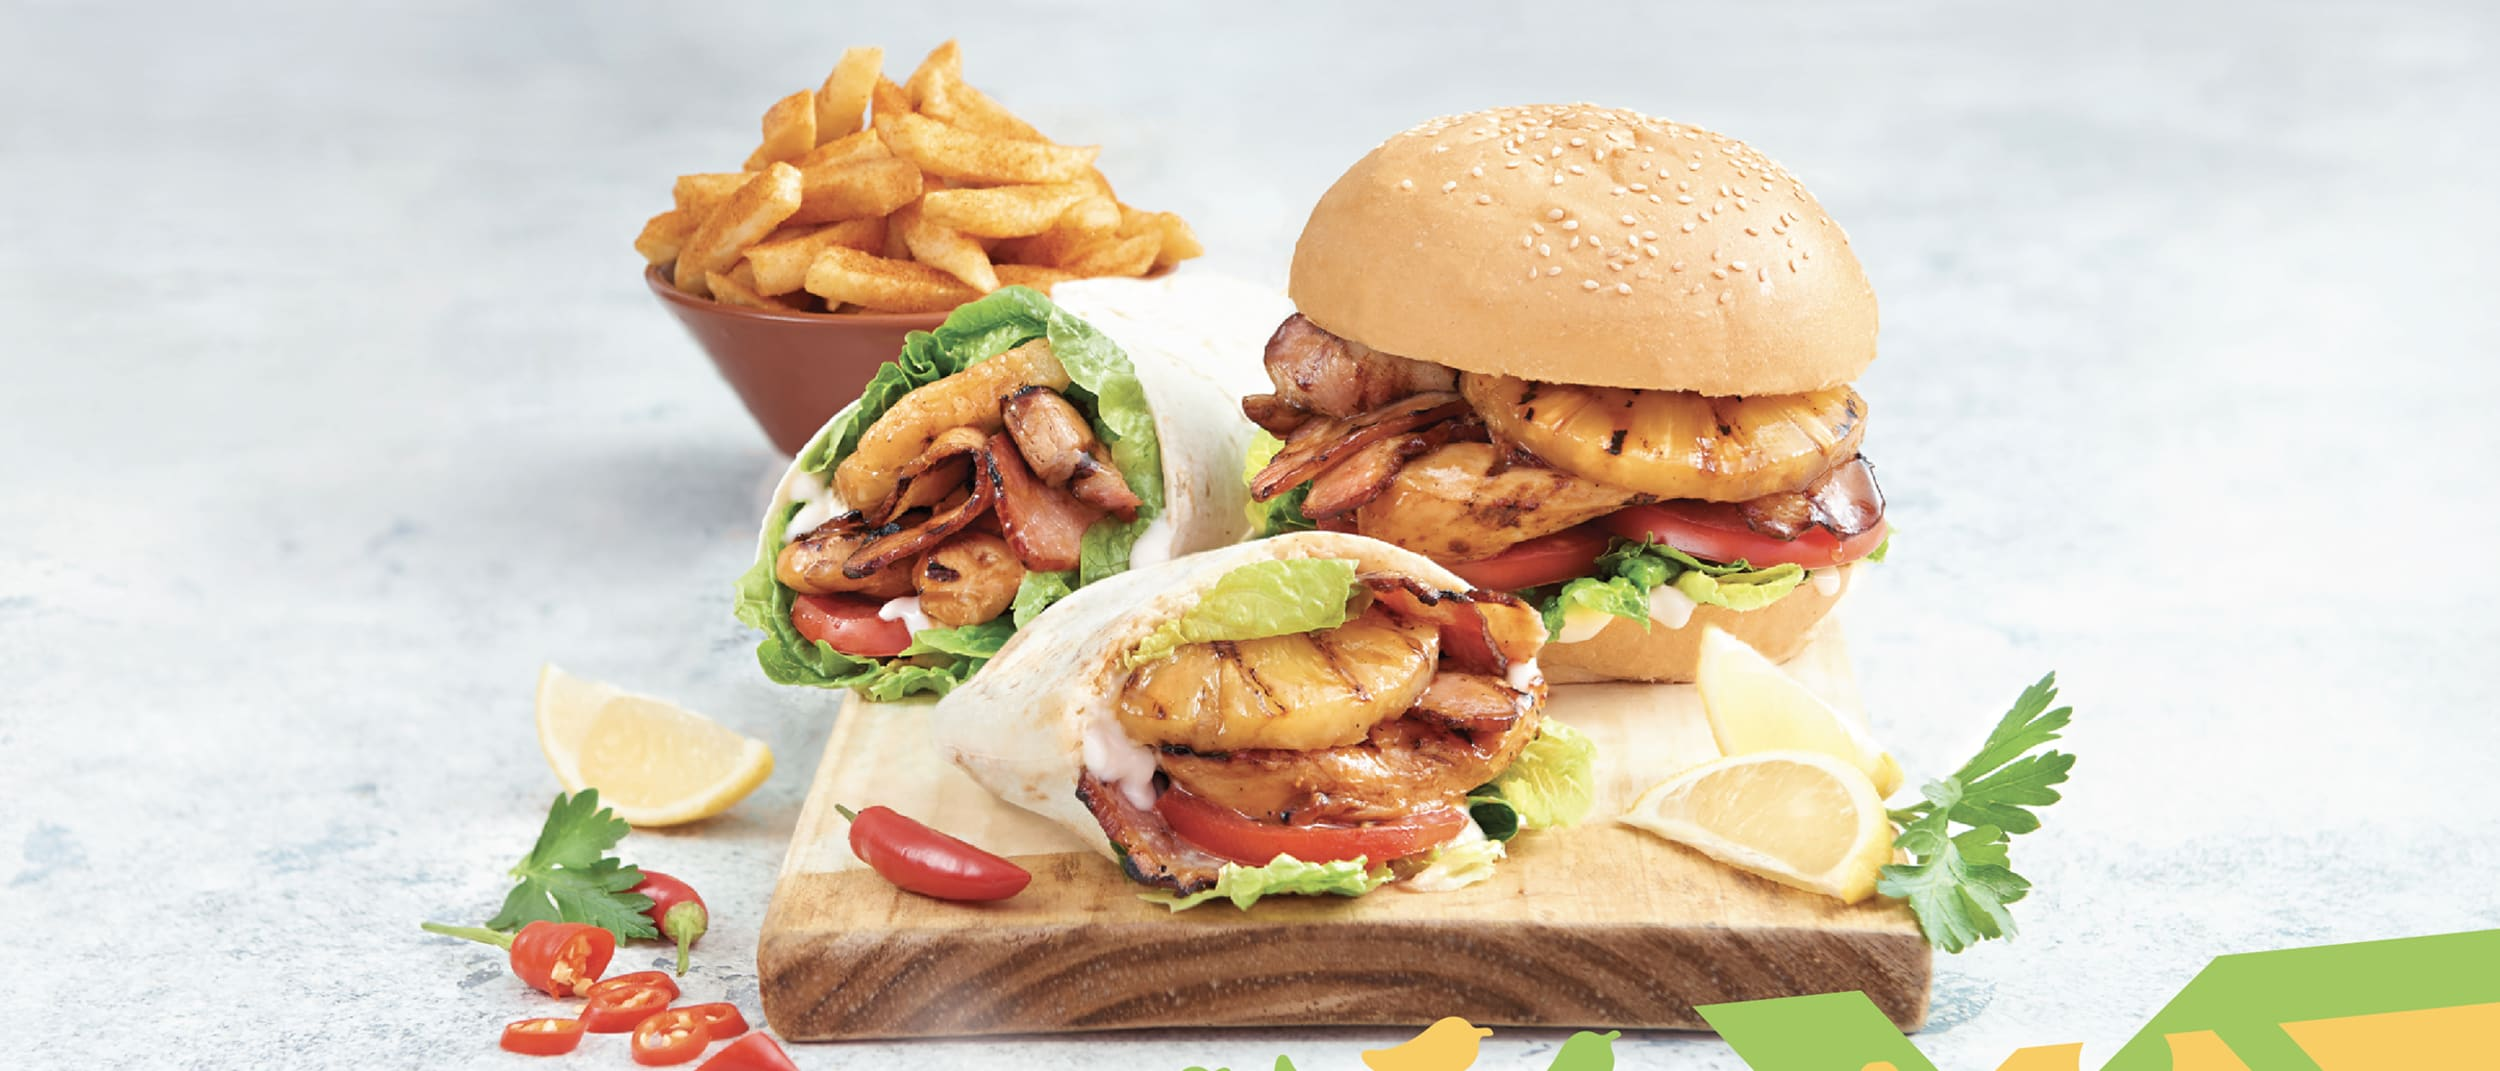 Westfield Plus Offer: Nando's - Complimentary sides with mains